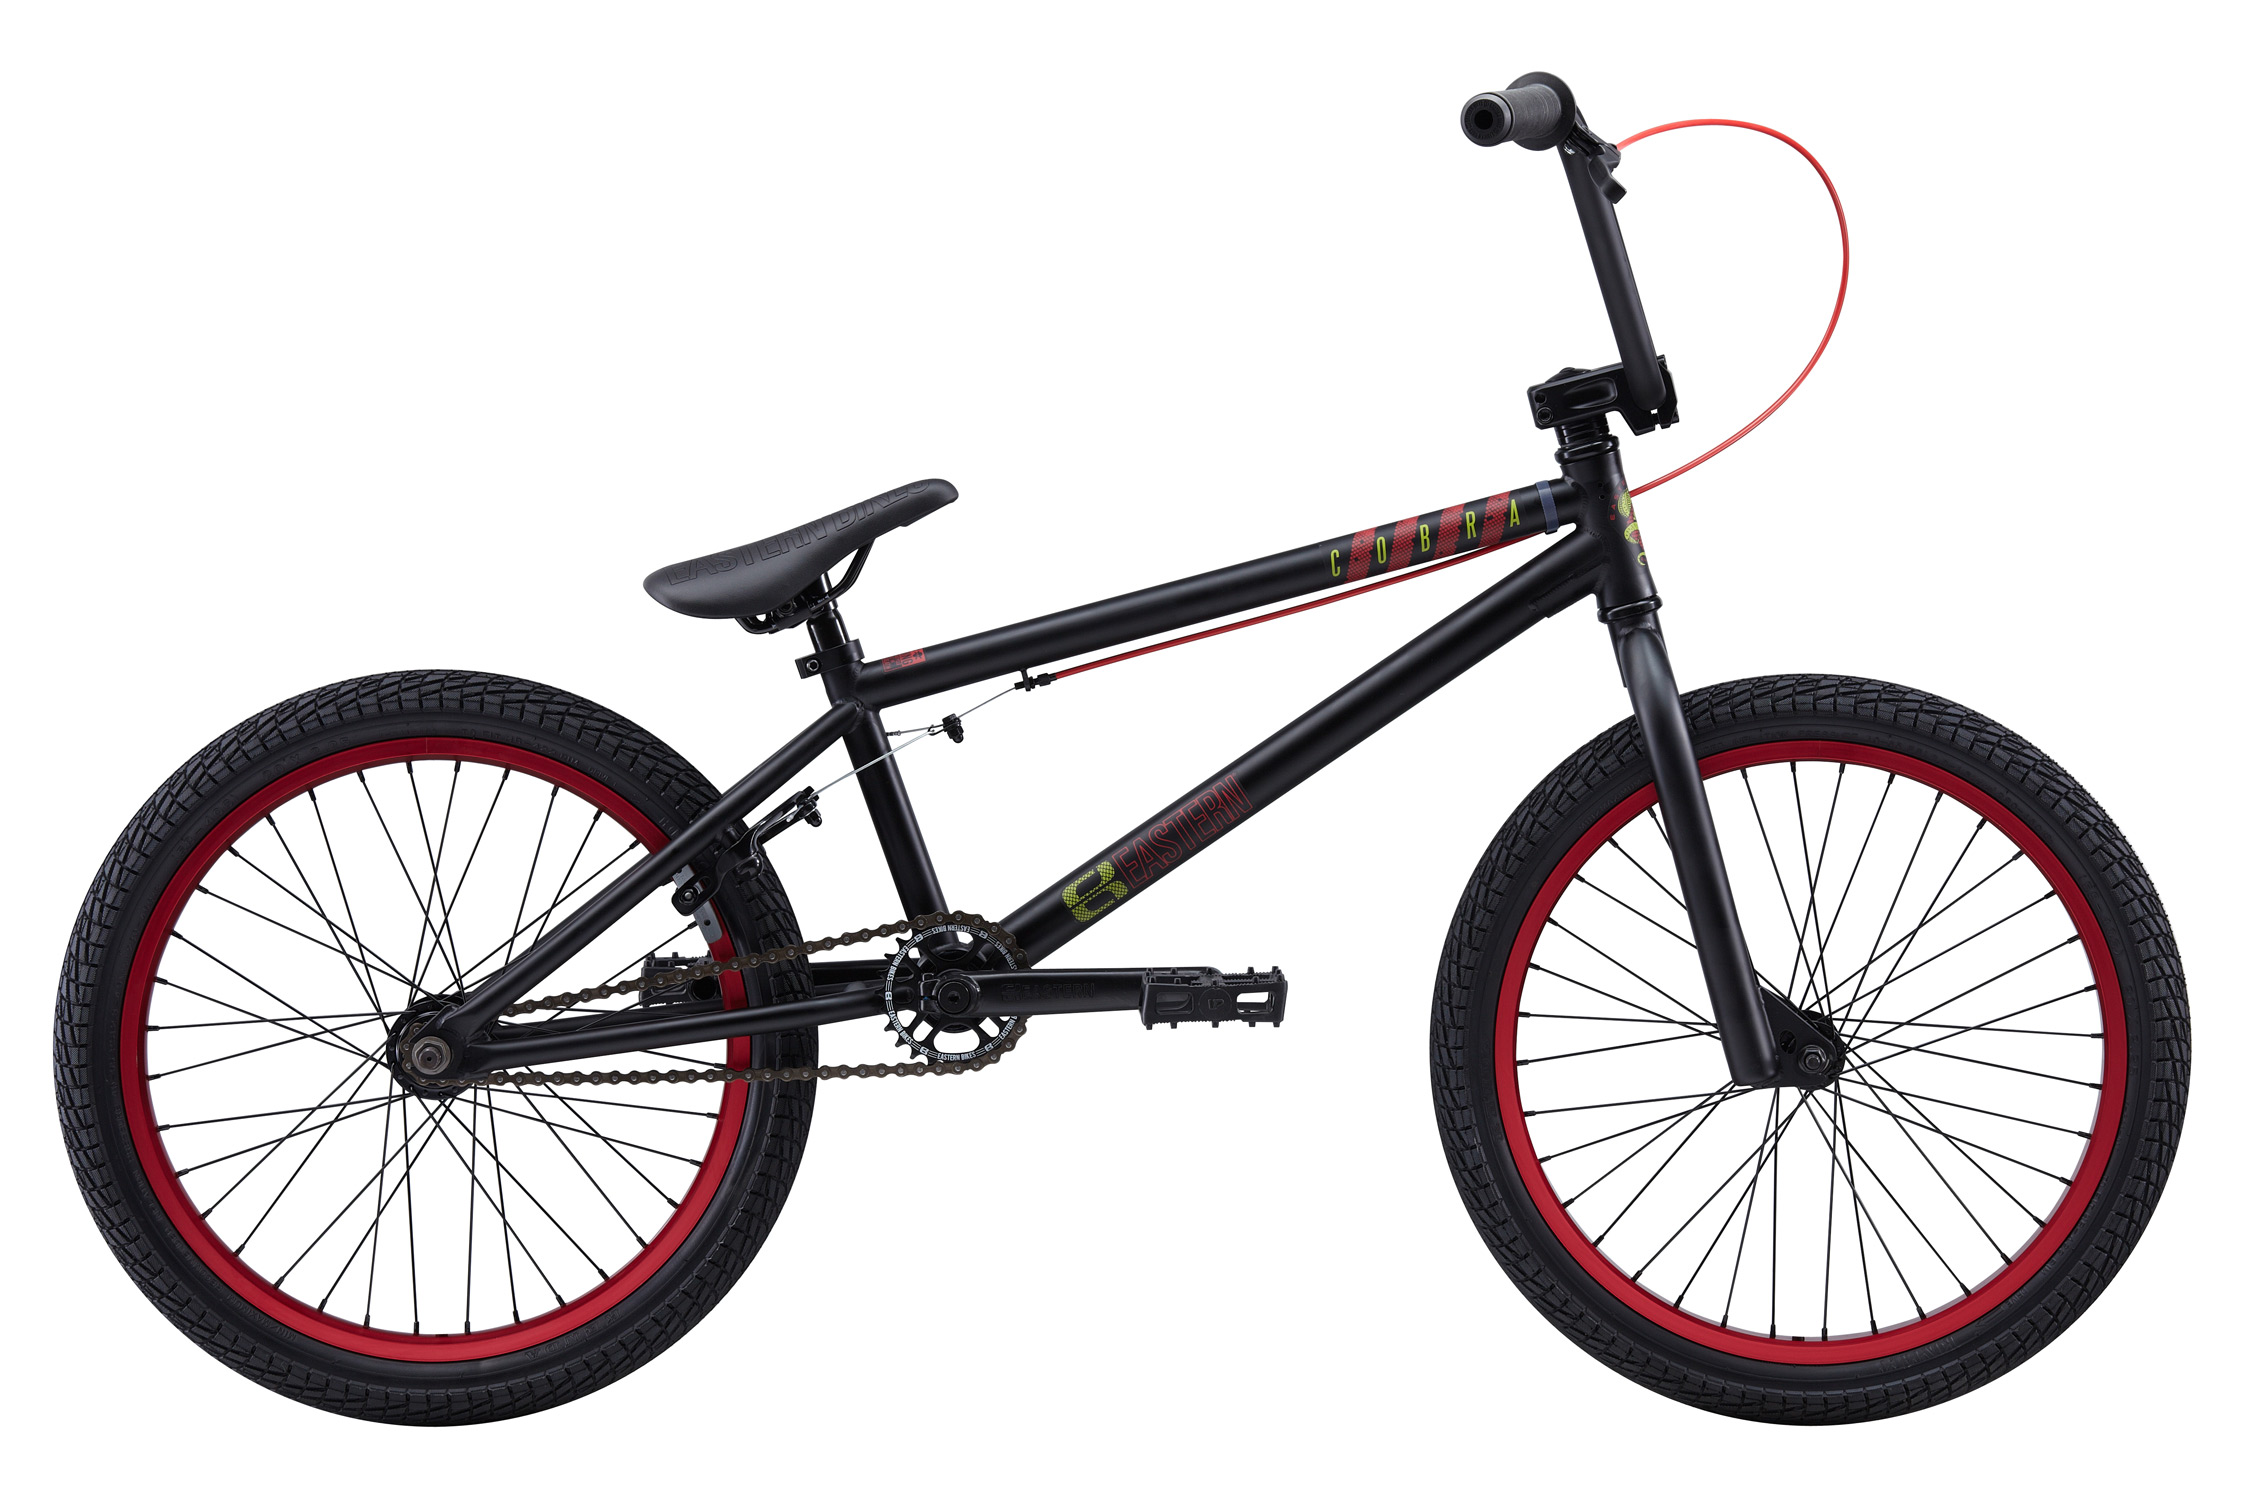 "BMX Key Features of the Eastern Cobra BMX Bike: WEIGHT: 26.5 LBS TOP TUBE SIZE: 20.5"" COLORS : Matte Black, Matte Black/Red, Matte Orange GEARING: 25/9 Micro-drive FRAME: Cobra Hi-Tensile Strength 1020 Steel Frame. Eastern Promise: lifetime warranty, lifetime upgrade policy FORK: Cobra Hi-Tensile Strength 1020 Steel BARS: 8.0""x 28.5"" , 1º Upsweep, 12º Backsweep HEADSET: 1-1/8"" Aheadset BB: American Loose Ball Bearing PEDALS: VP Components Plastic Platform Pedals GRIPS: Velo Mushroom Grip** STEM: Forged Alloy Front Load SPROCKET: 25T Steel CRANKS: Tubular chromoly heat-treated 3pc. cranks with 8 spline spindle SEAT: Adjustable Saddle with Embossed Logo SEATPOST: Steel SEAT CLAMP: Nitrous Locker Forged Alloy Clamp TIRES: Multi-Surface, 20""x2.35""** FRONT HUB: Sealed Bearing, 36 hole Alloy Shell, 3/8"" chromoly axle REAR HUB: Fully Sealed 36 hole cassette hub, Forged Alloy Shell, 1pc. 9-tooth chromoly driver, 14mm chromoly axle, 5 sealed bearings. RIMS: REAR-Double Wall Alloy, 36 Hole FRONT- Alloy 36 hole REAR BRAKES: Tektro Forged Alloy U-Brake /Straight Cable / Forged Alloy lever, Designed for U-Brakes FREEWHEEL: Sealed bearing 9-tooth 1pc. driver CHAIN: KMC PEGS: 2 pegs - $319.99"